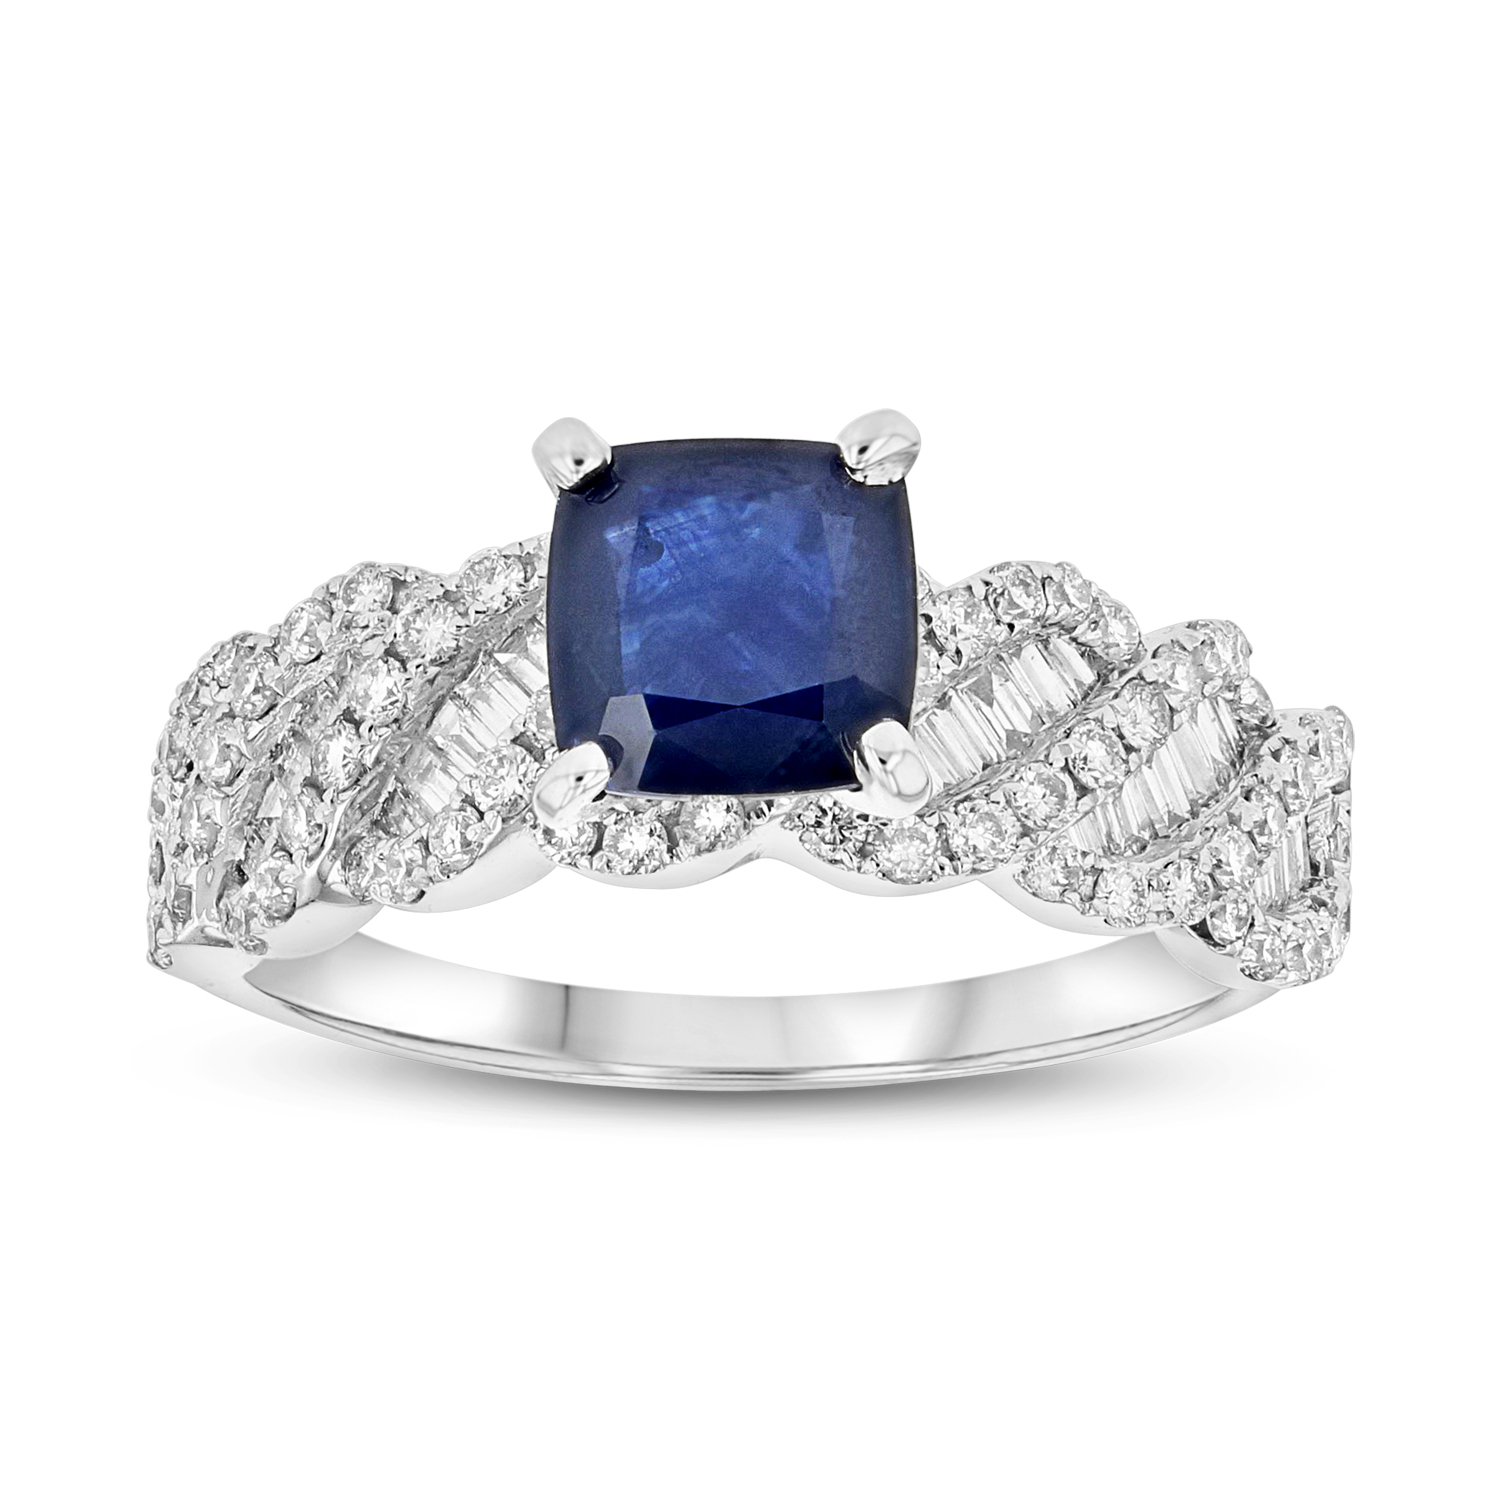 View 1.97ctw Sapphire and Diamond Engagement Ring in 18k White Gold